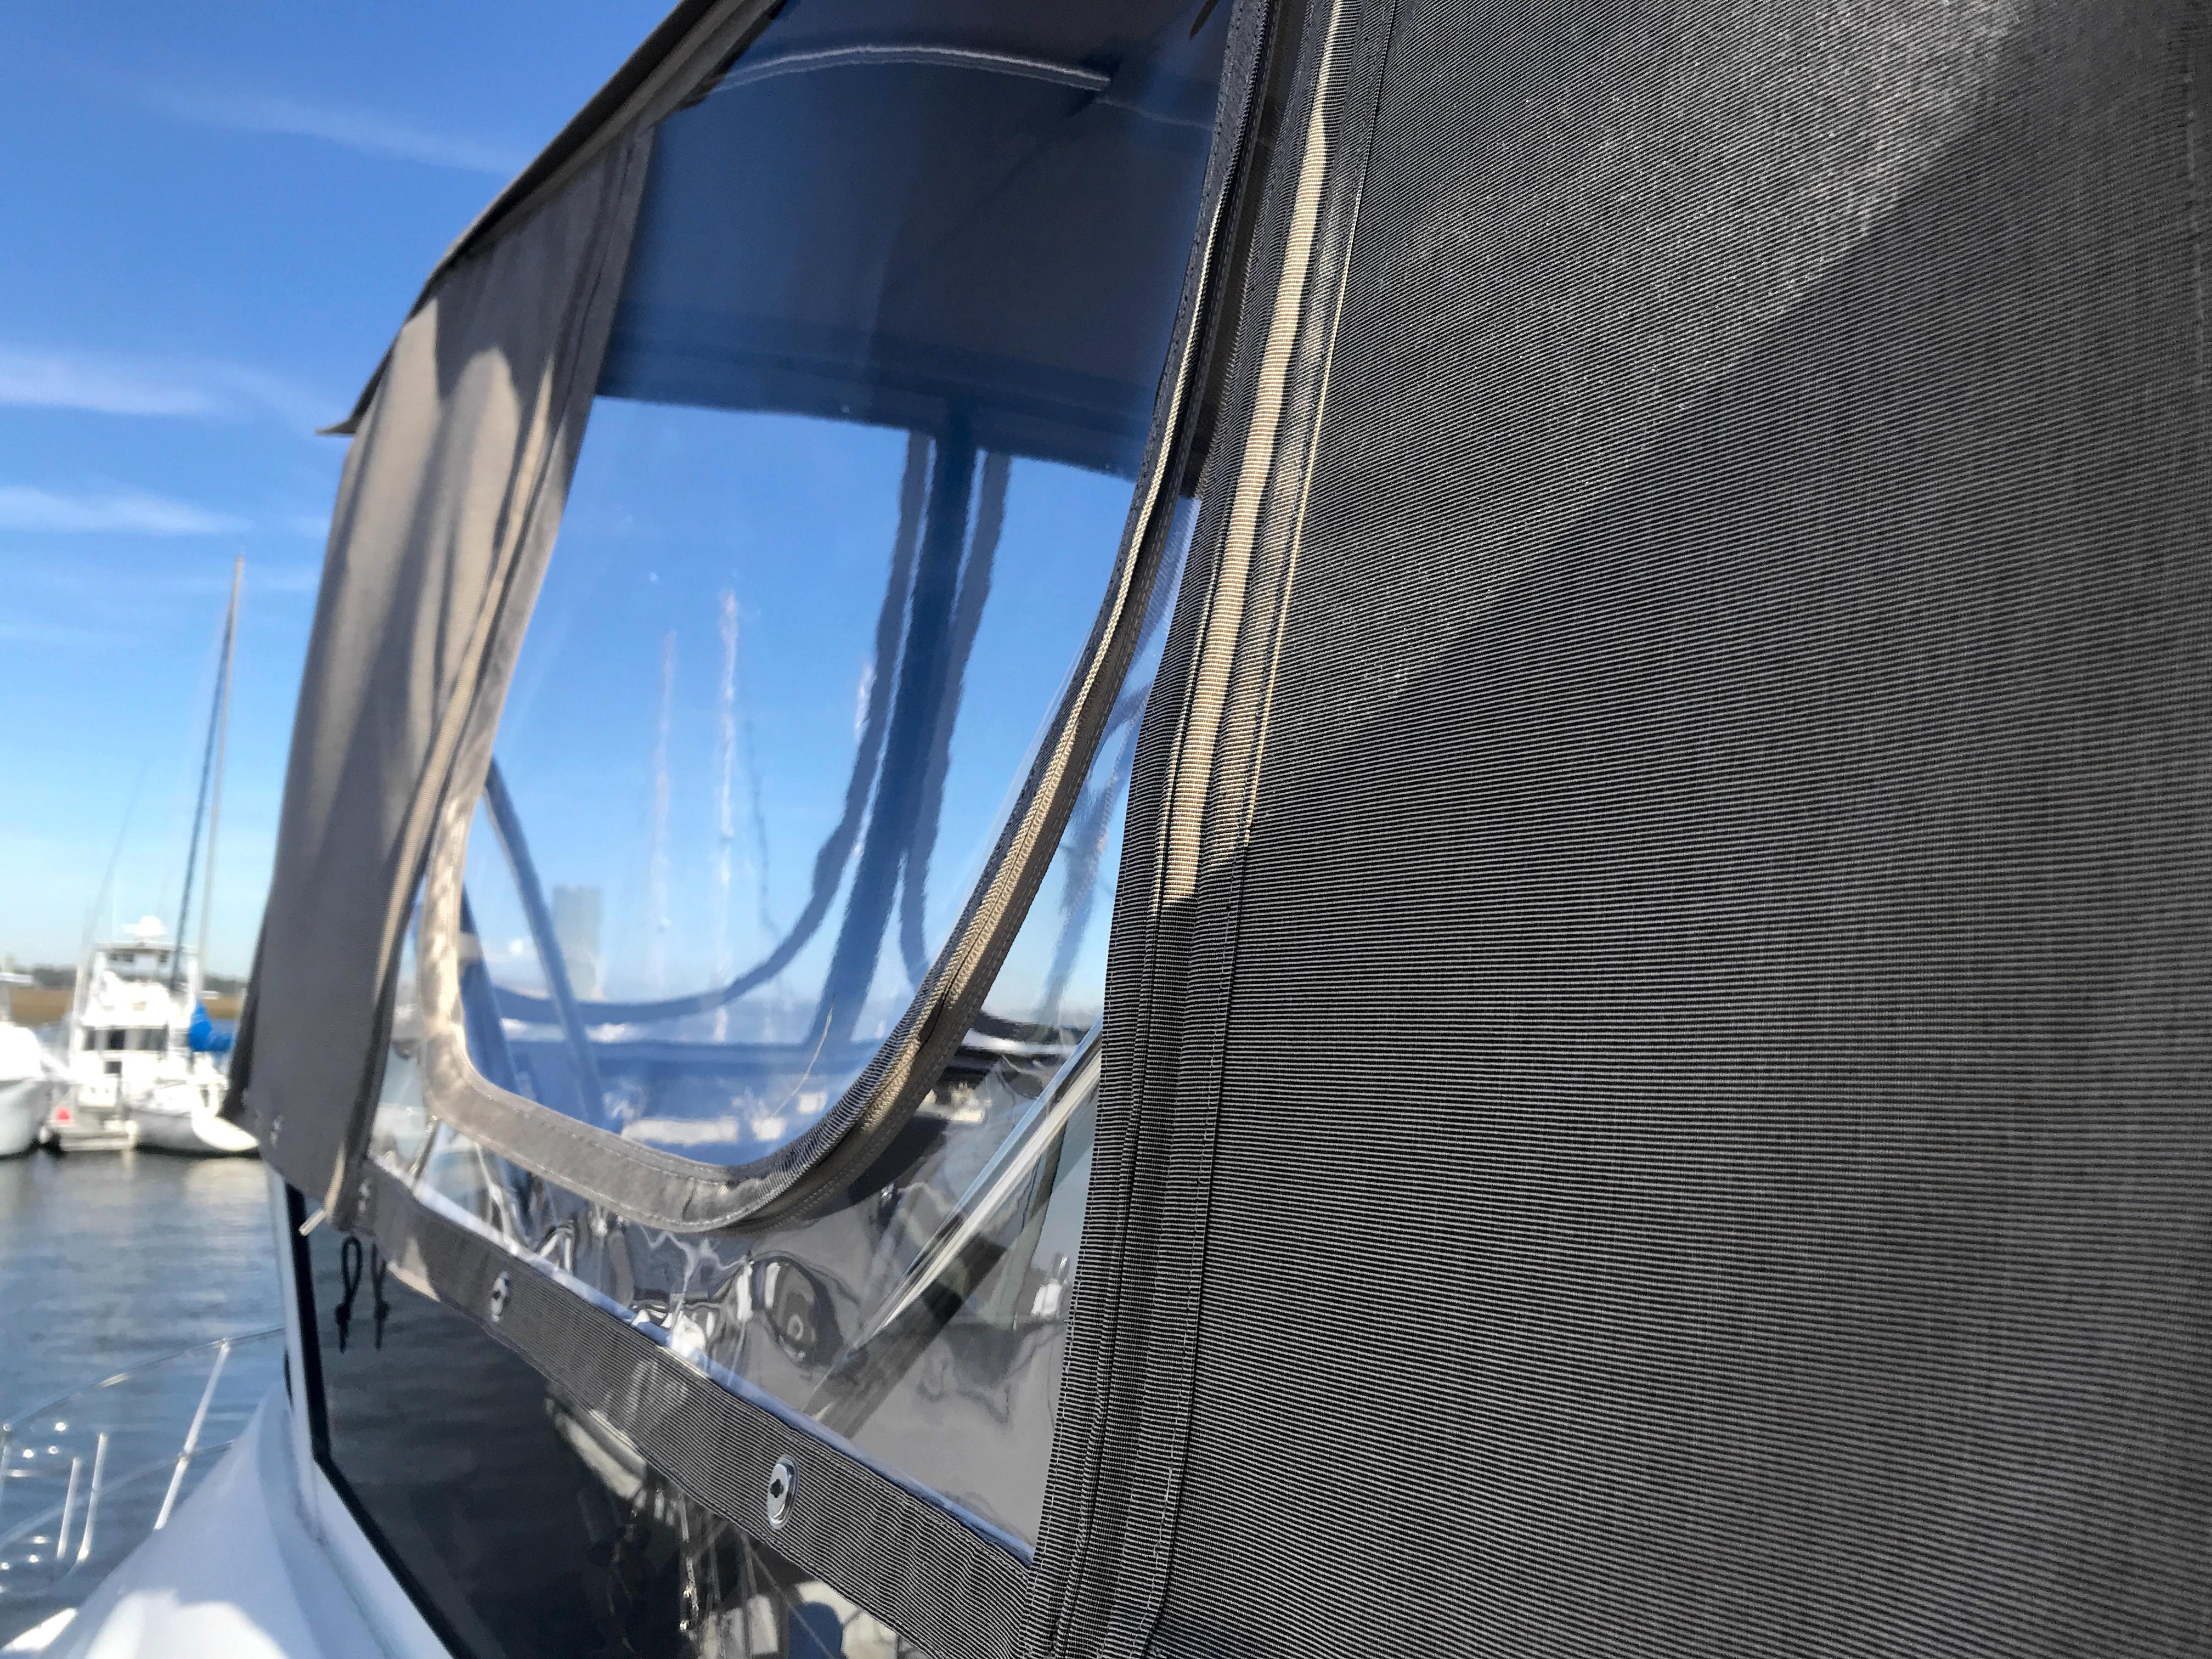 Sea Ray 370 Aft Cabin - new canvas and isinglass